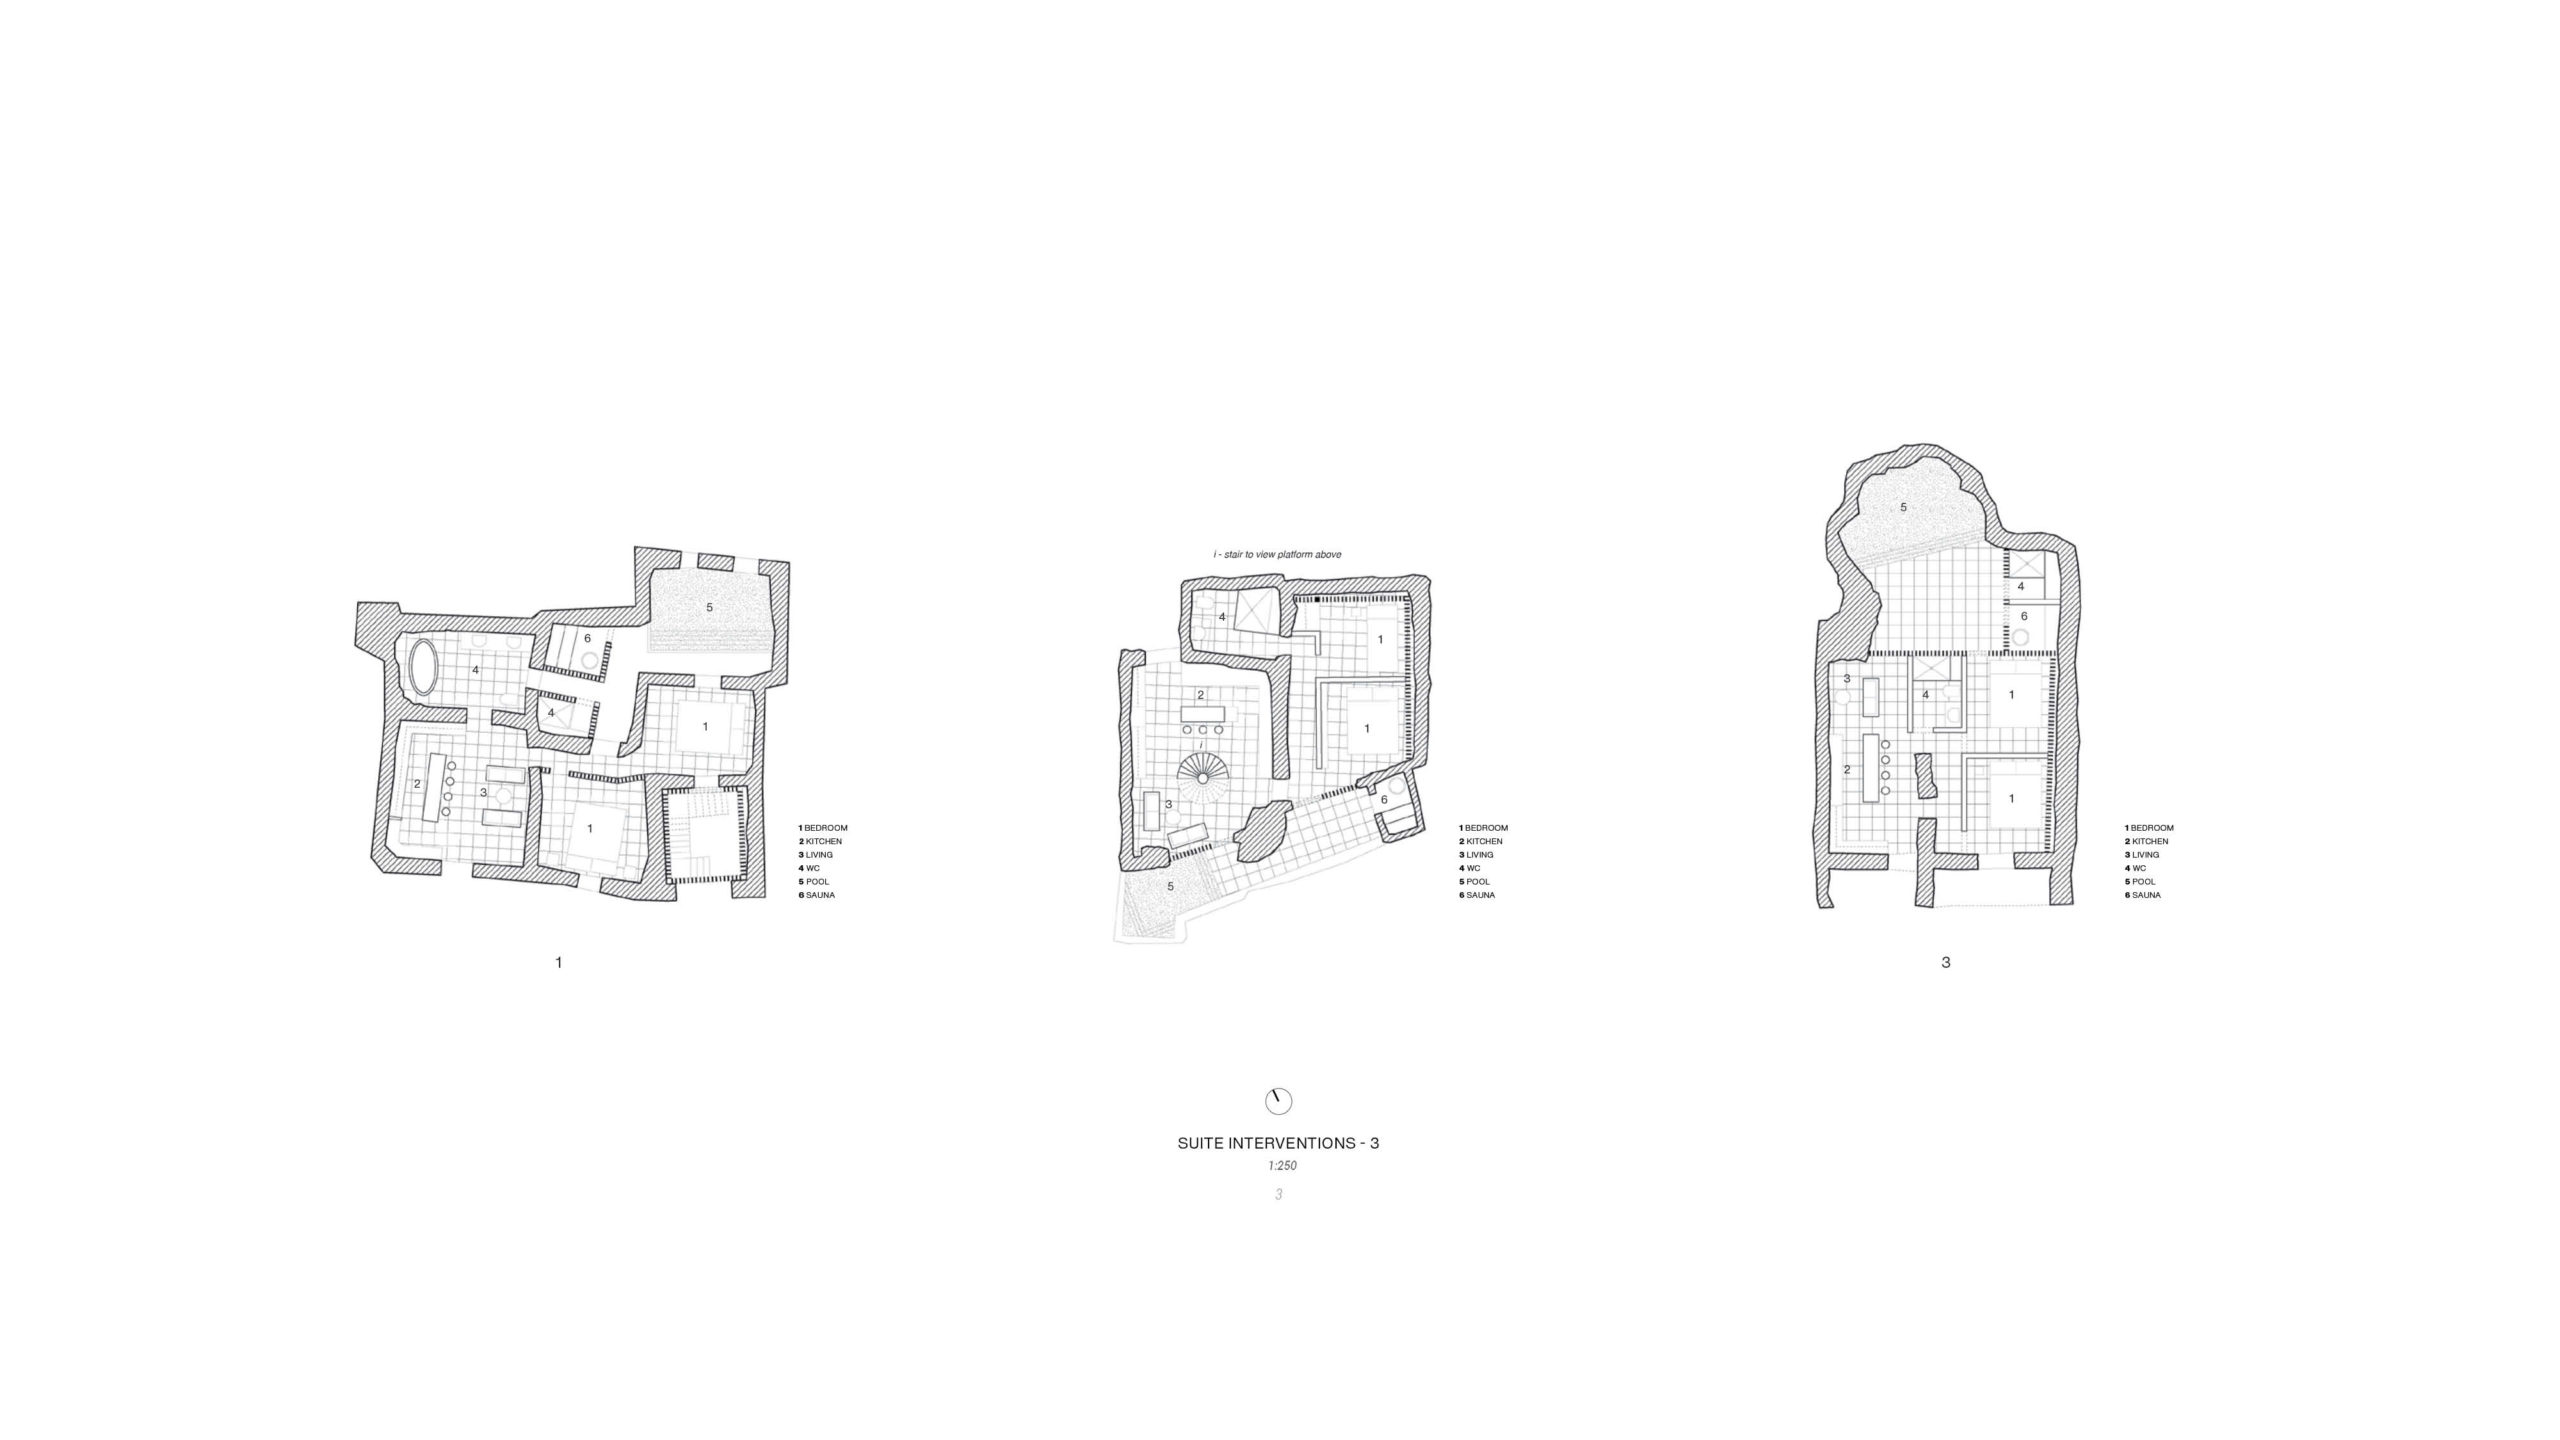 Unbuilt : TRACES - GHOST TOWN REFUGE, at Craco, Italy, by Claudio C. Araya, Yahya Abdullah 5